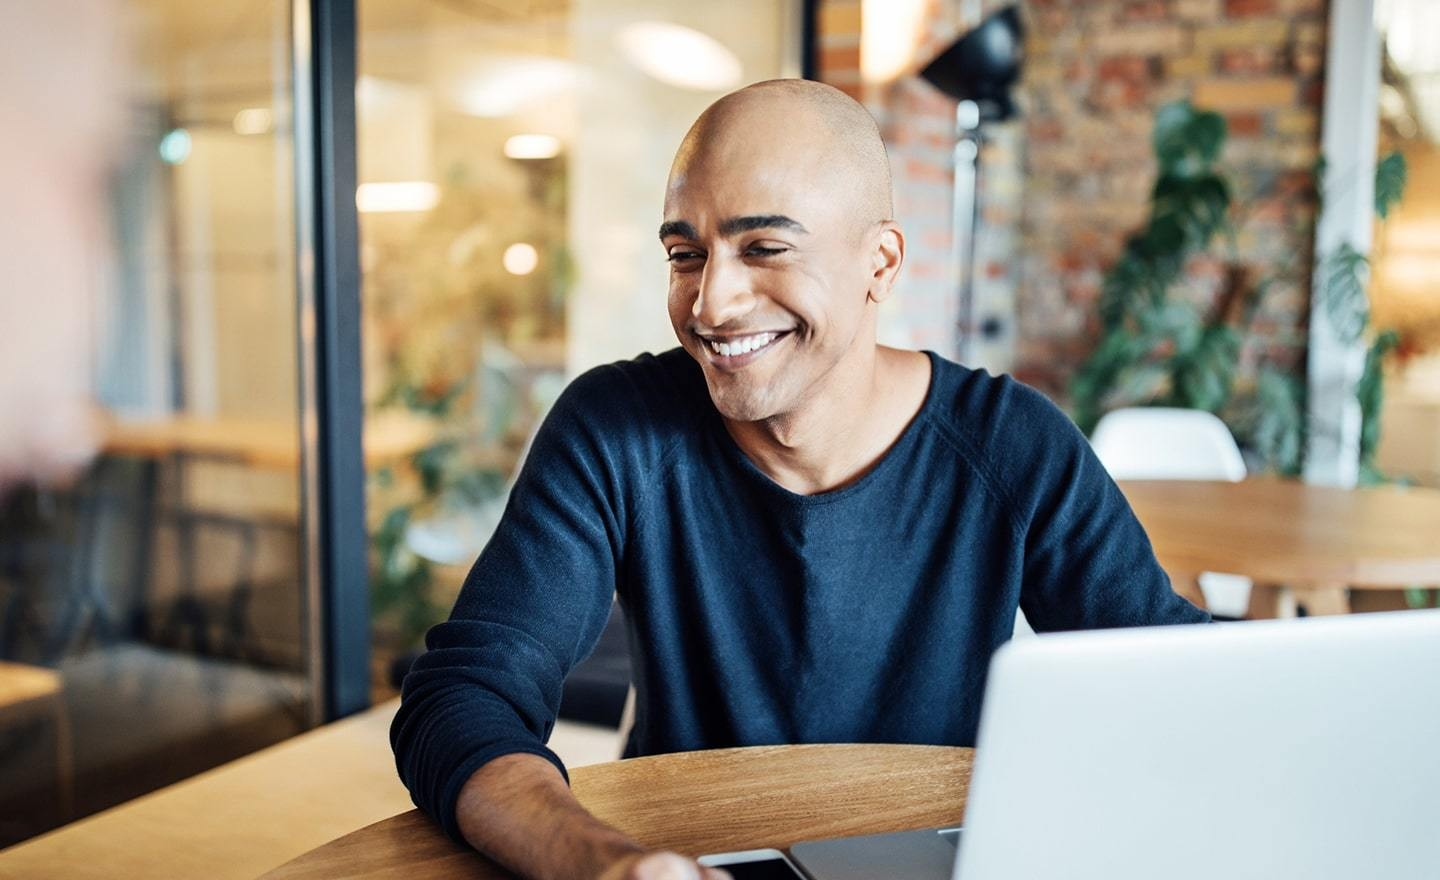 Man with shaved head smiling in front of a laptop